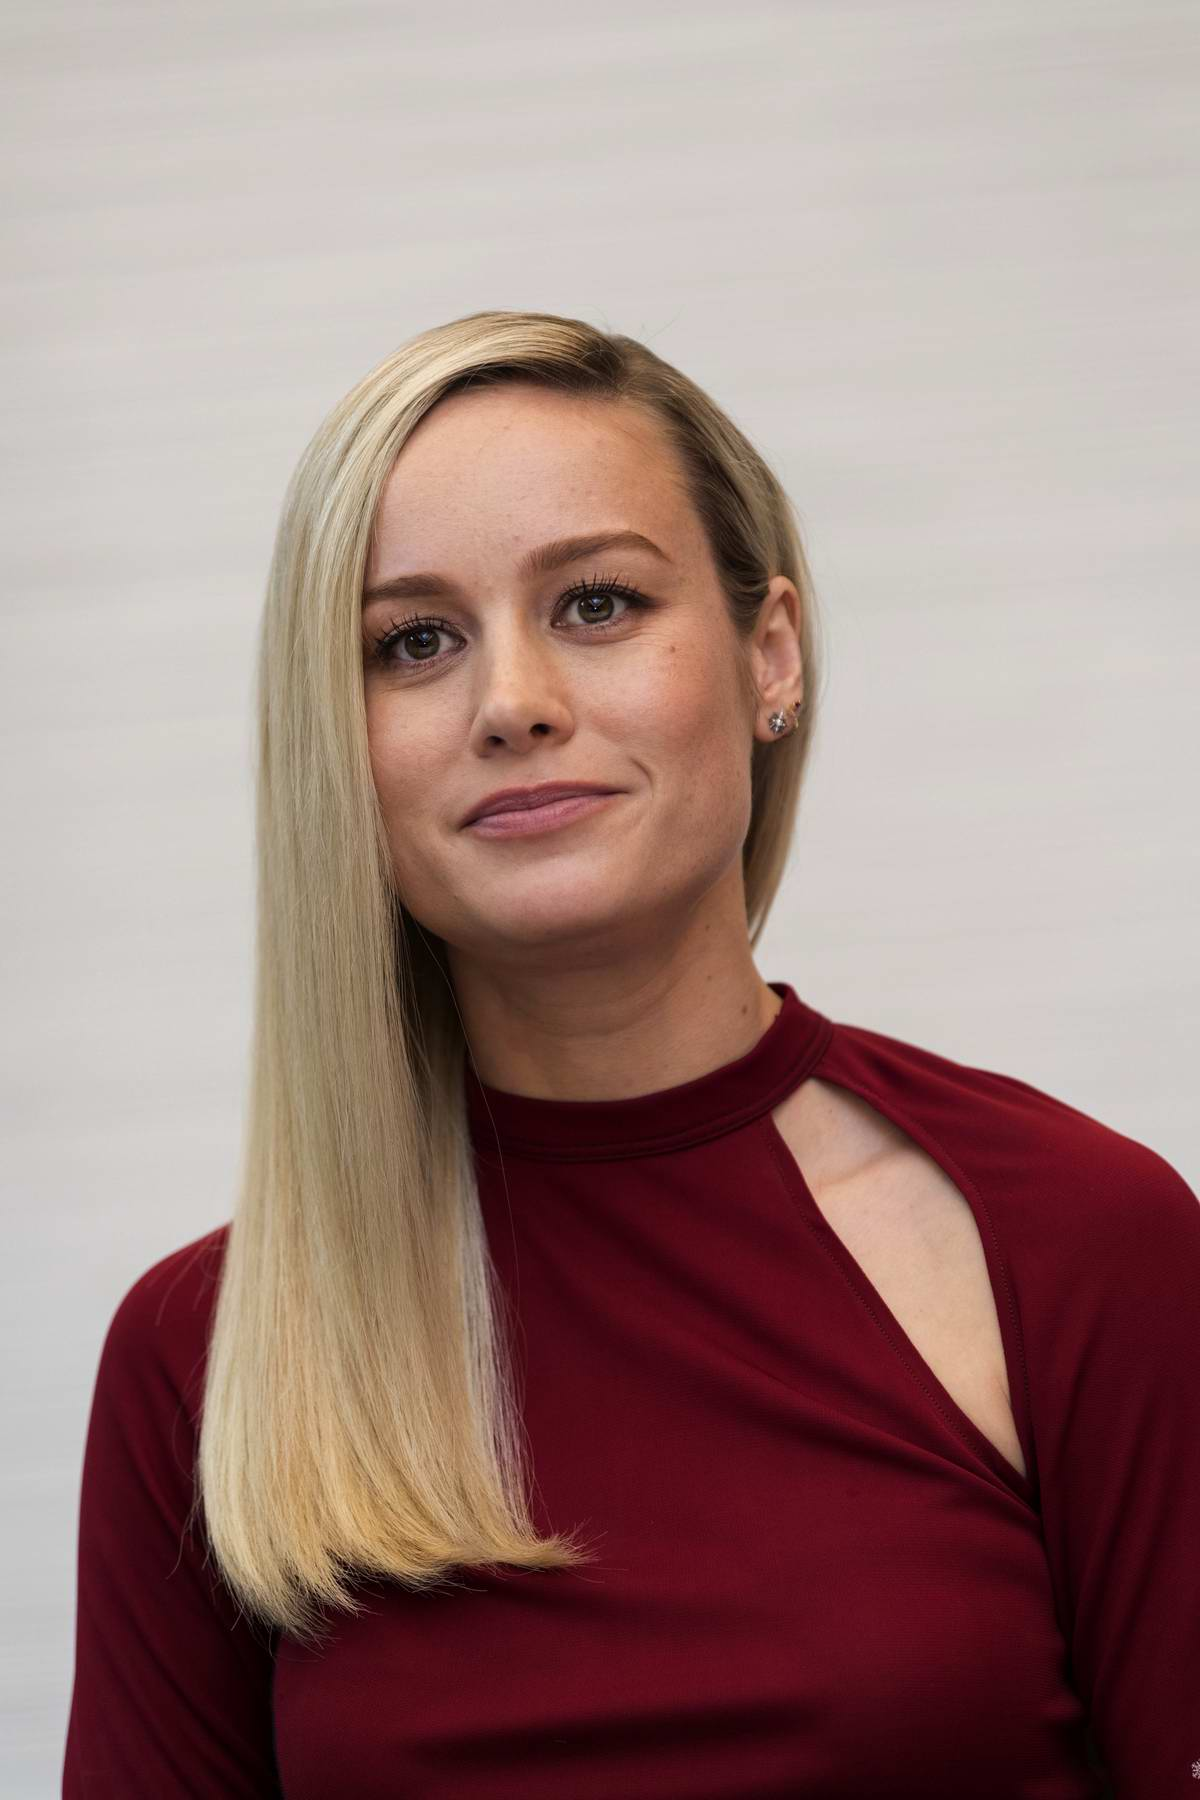 Brie Larson attends 'Avengers: Endgame' Press Conference in Los Angeles